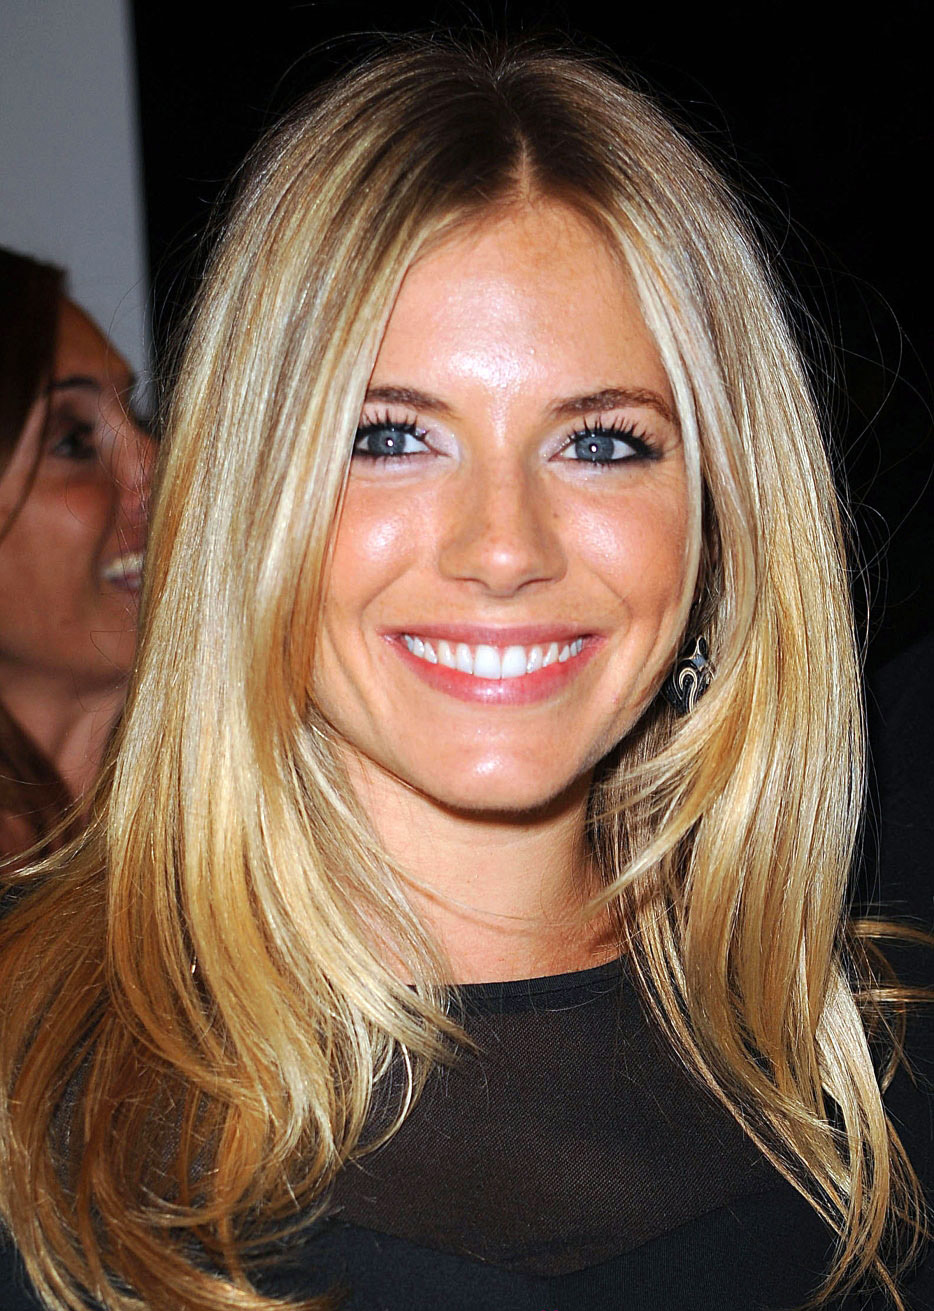 Sienna Miller (born 1981 (born in New York City